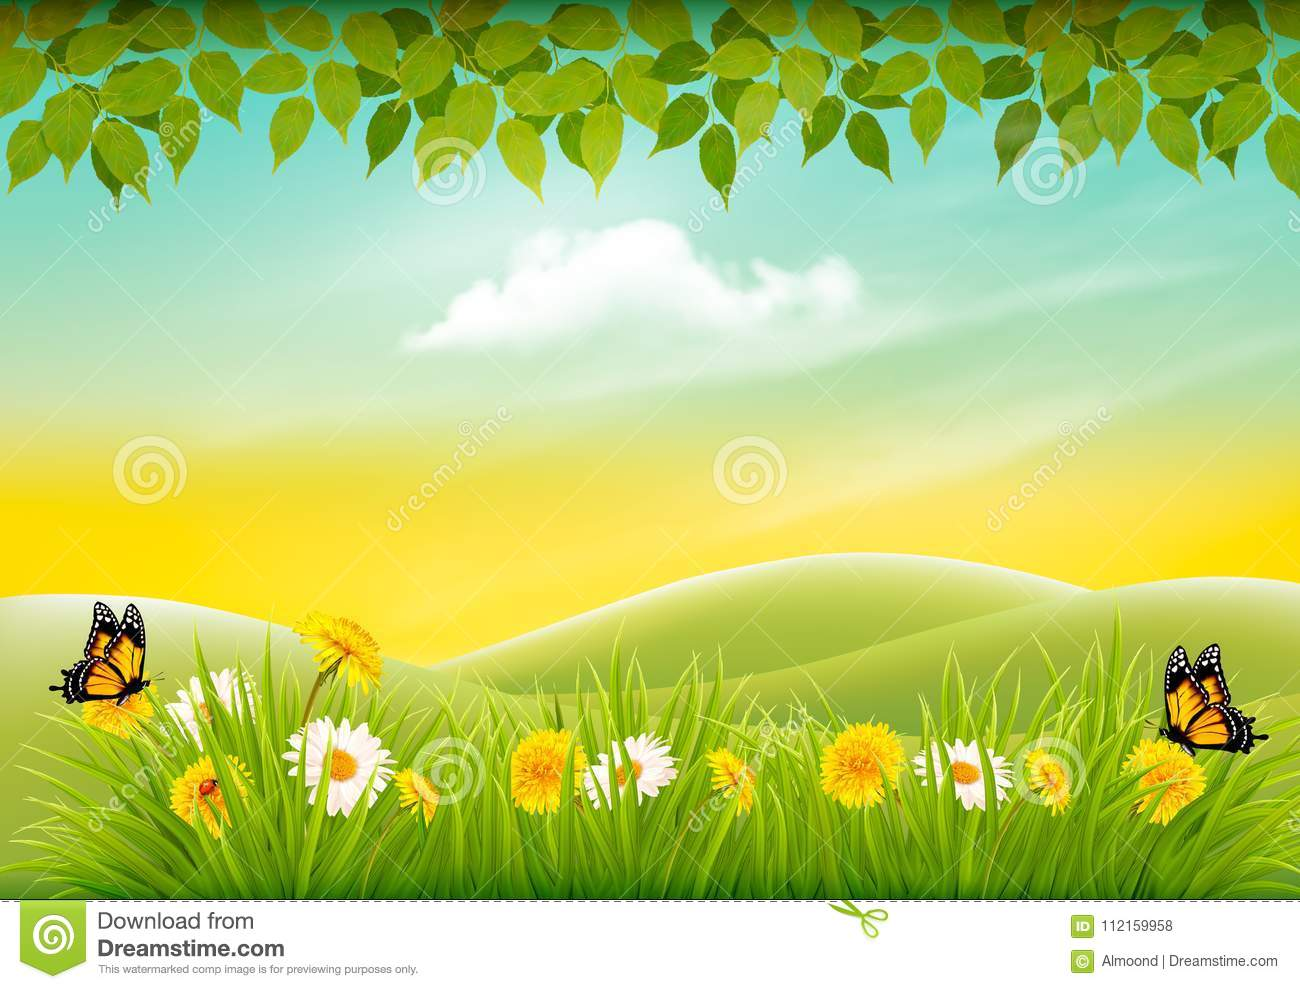 Spring nature landscape background with flowers and butterflies.